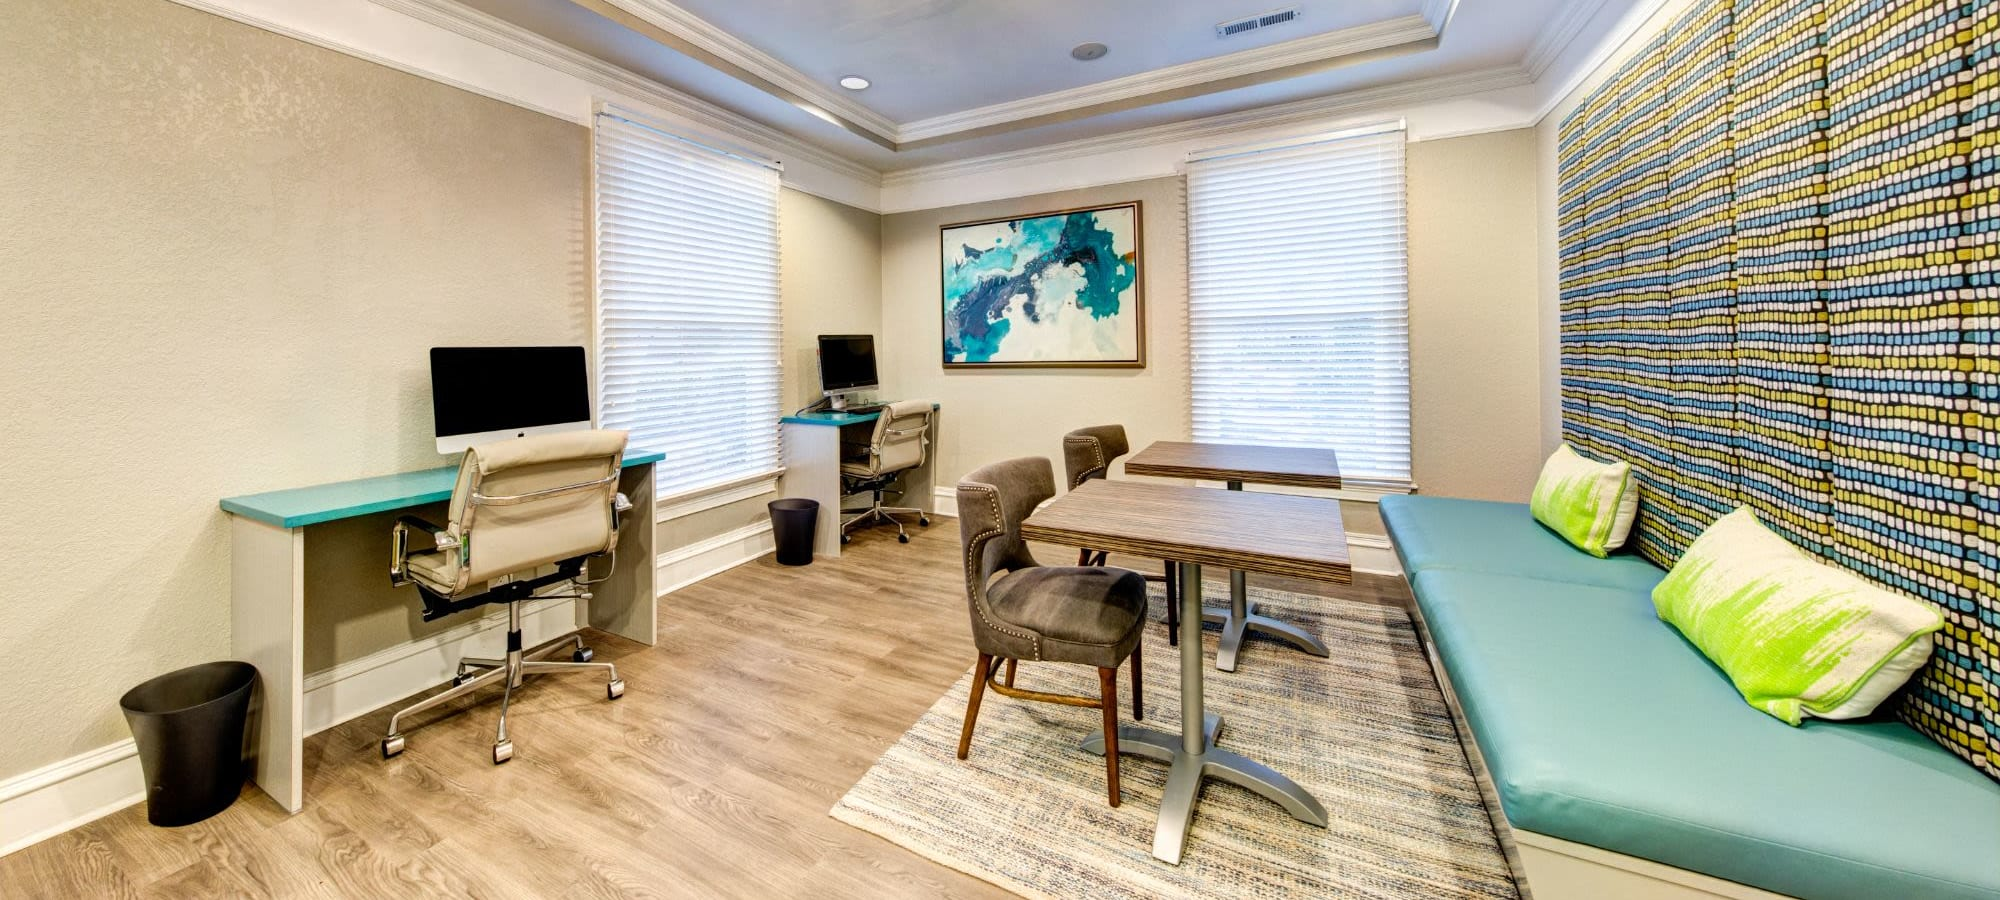 Virtual tours of Marquis on Edwards Mill in Raleigh, North Carolina